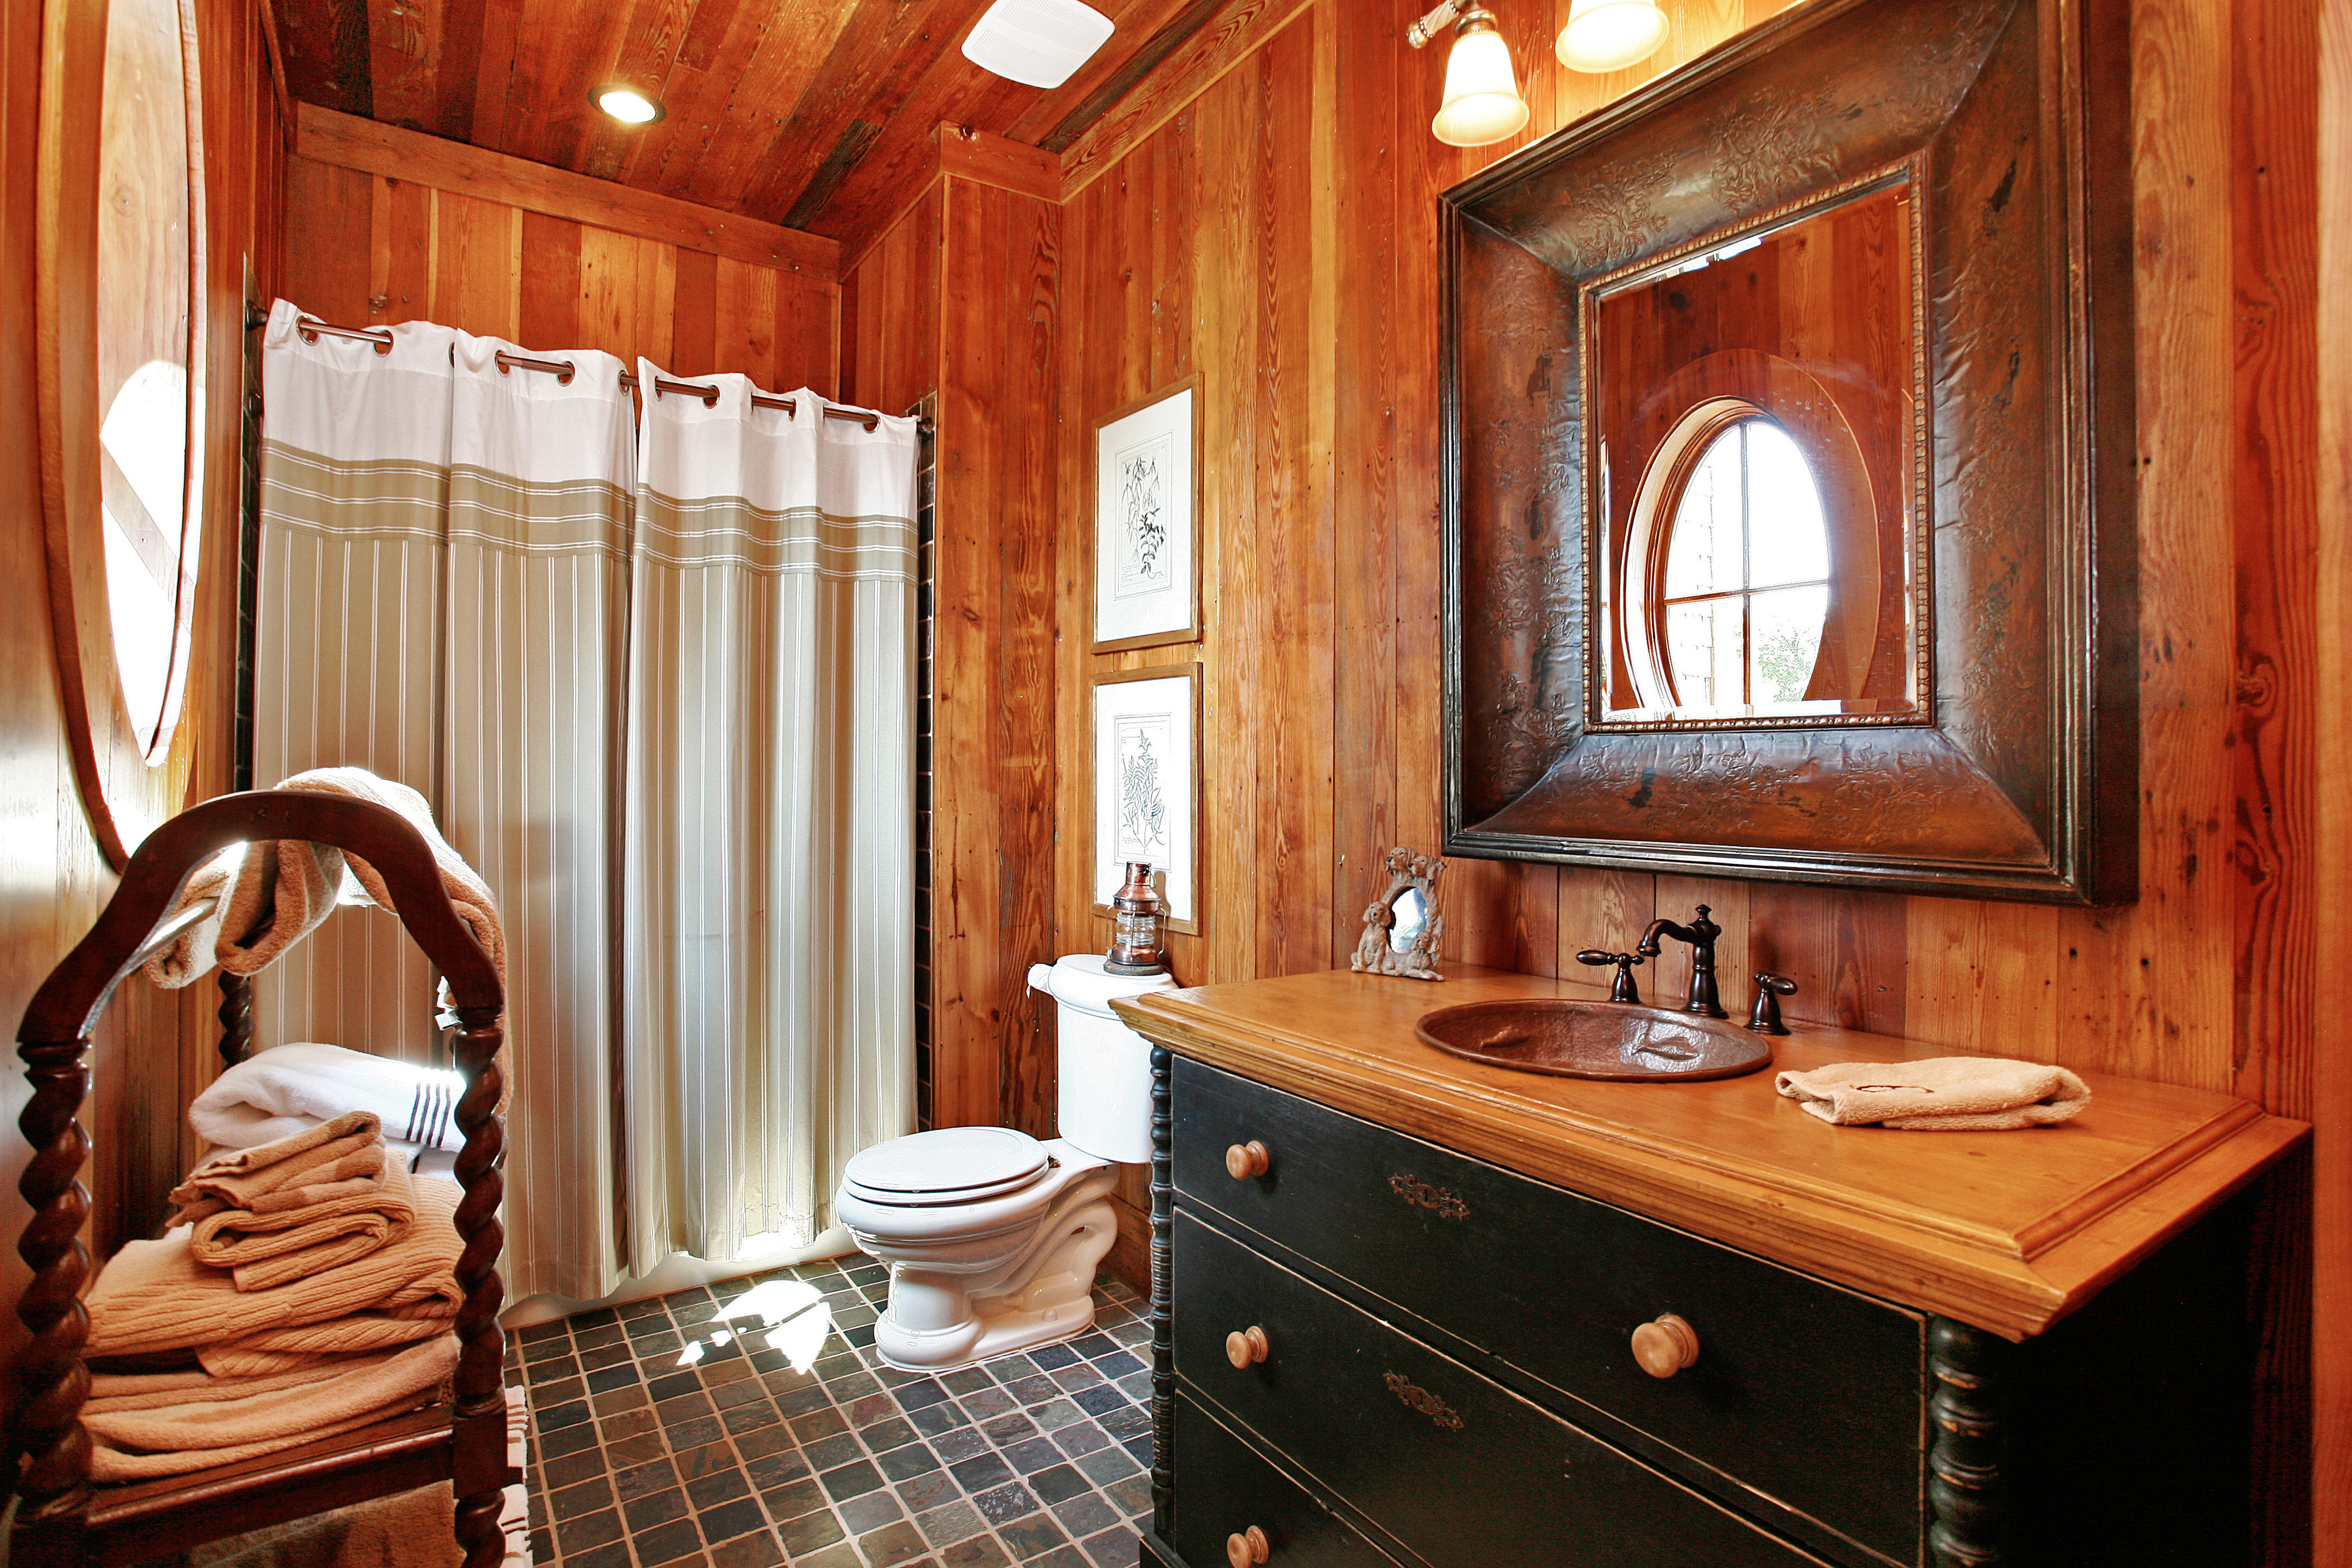 Nice Bathroom Setup : Stunning spaces charming rustic lakefront home the vht